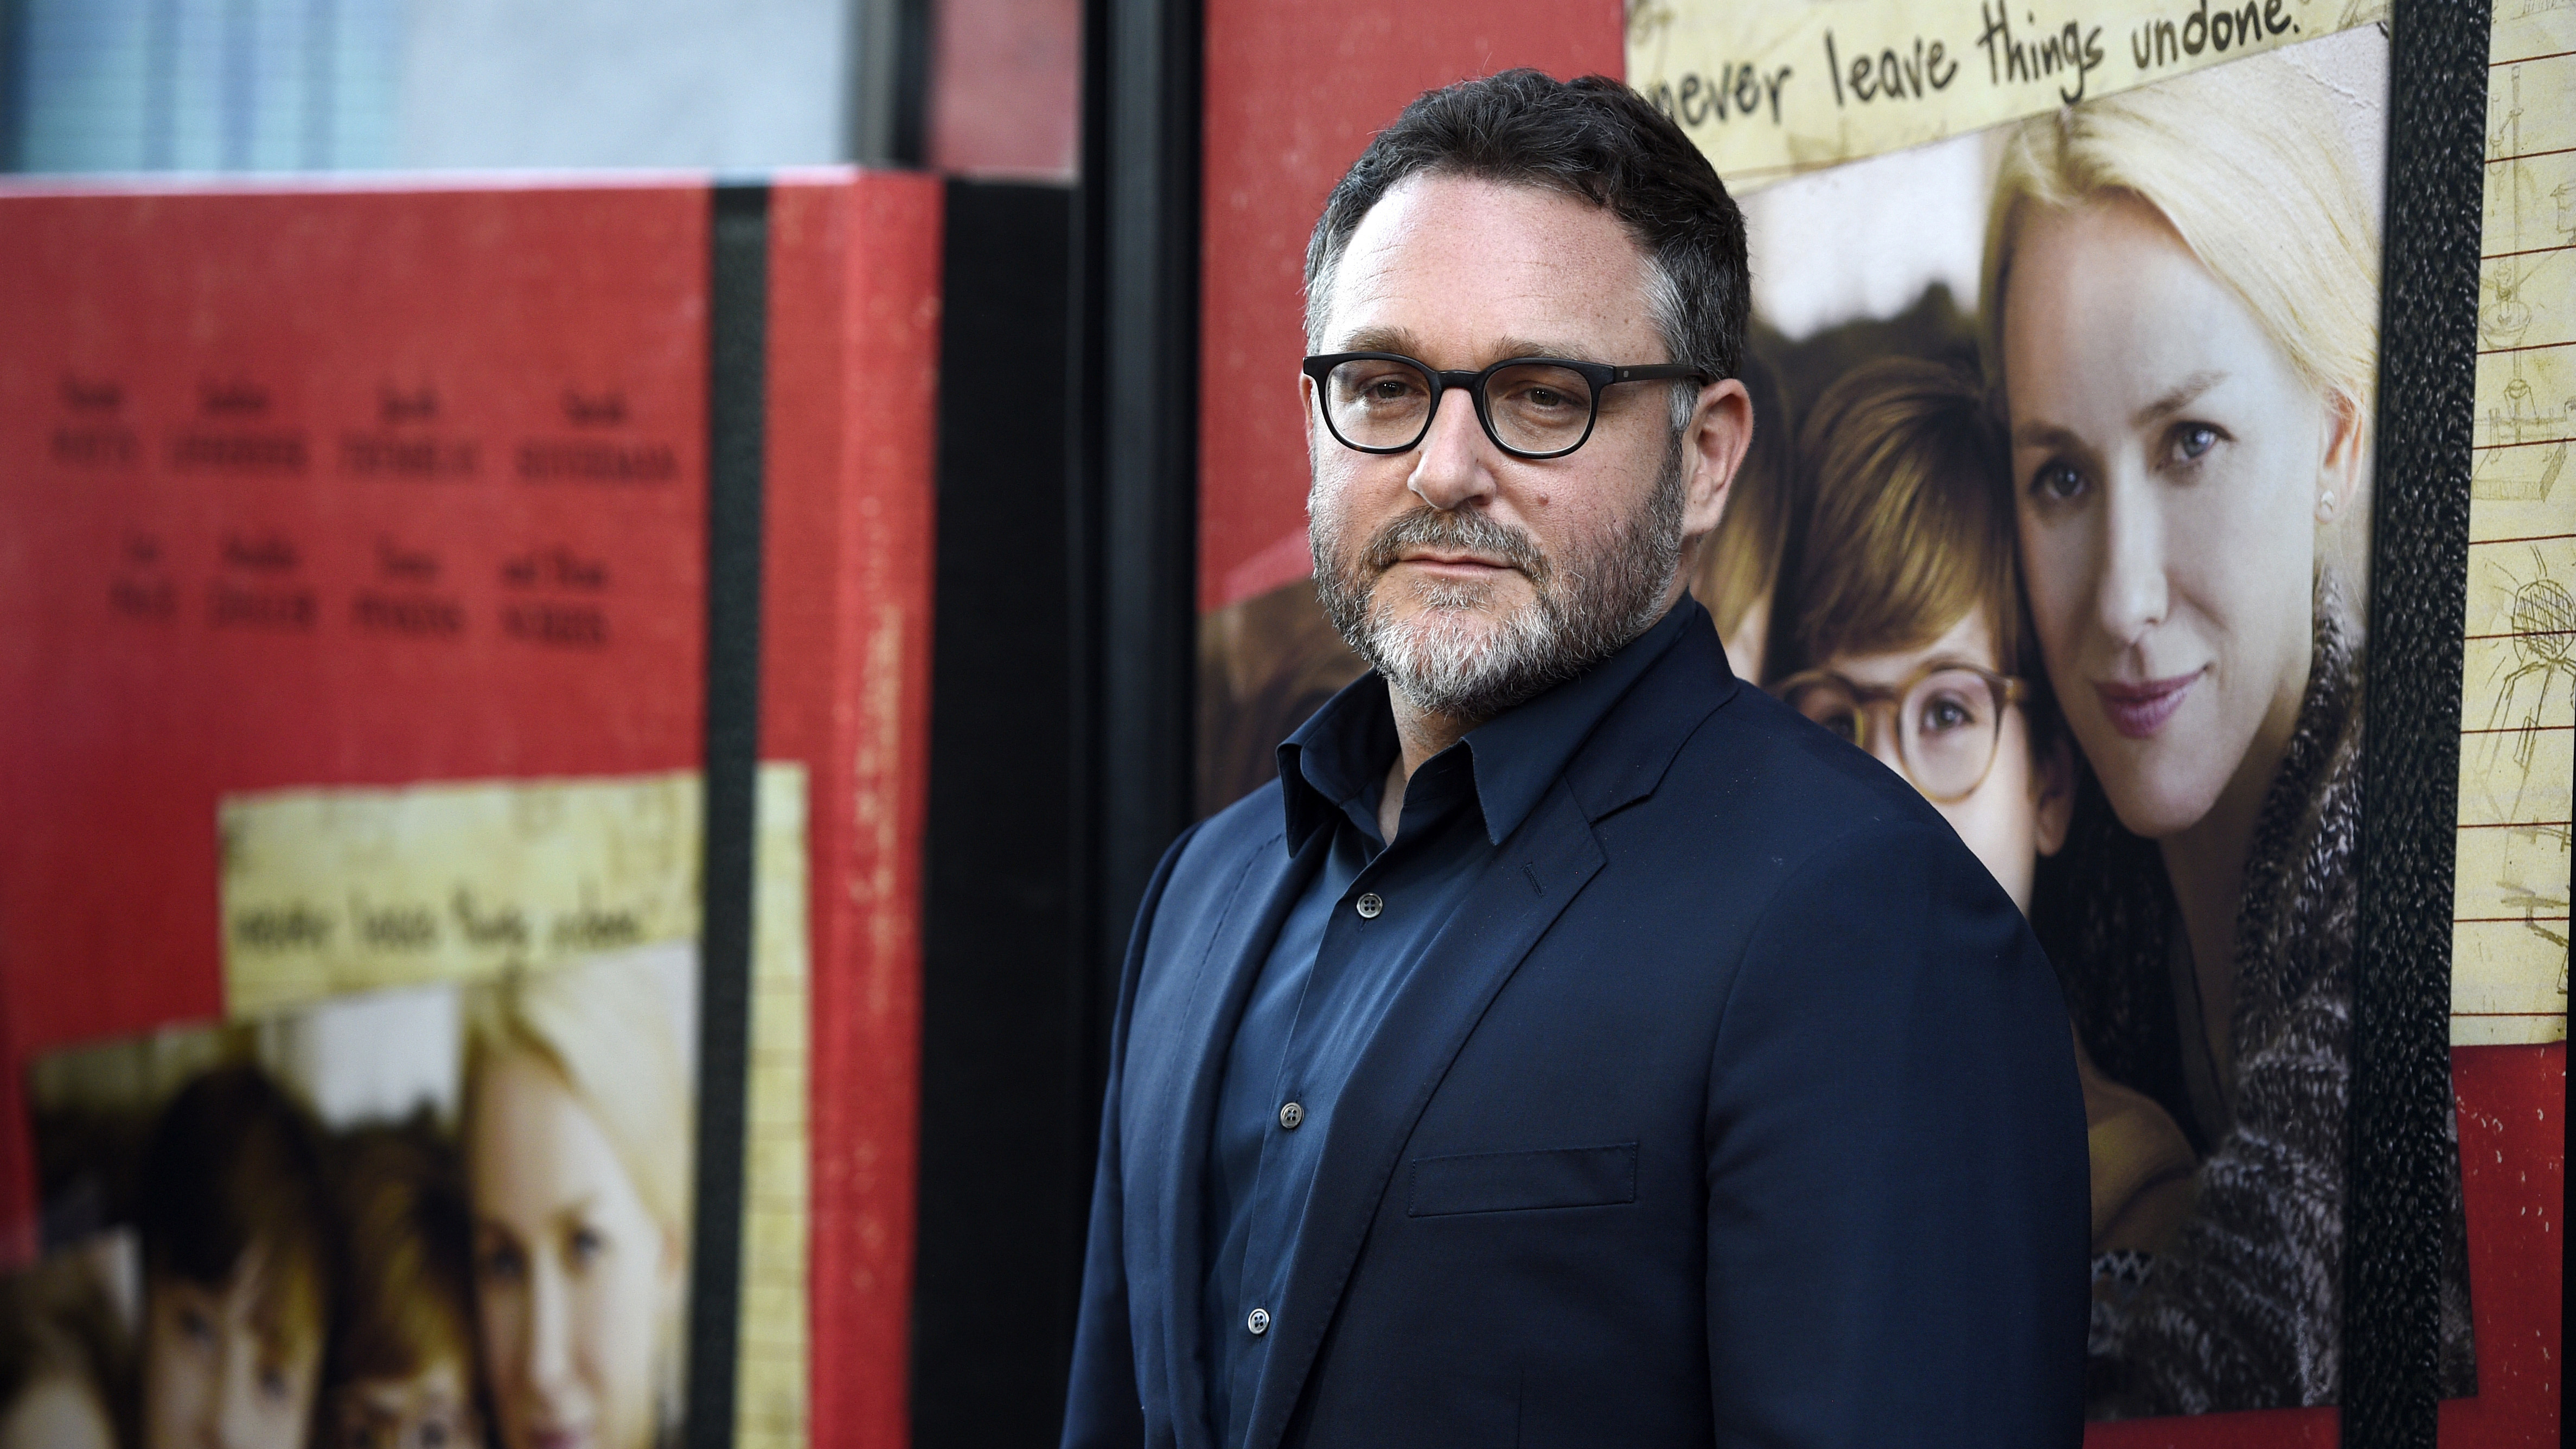 """FILE- In this June 14, 2017, file photo, , director of """"The Book of Henry,"""" poses at the premiere of the film on the opening night of the 2017 Los Angeles Film Festival at the ArcLight Culver City in Culver City, Calif.  Trevorrow will no longer be directing """"Star Wars: Episode IX."""" Lucasfilm said Tuesday, Sept. 5, that the company and the director have mutually chosen to part ways citing differing visions for the project. (Photo by Chris Pizzello/Invision/AP, File)"""